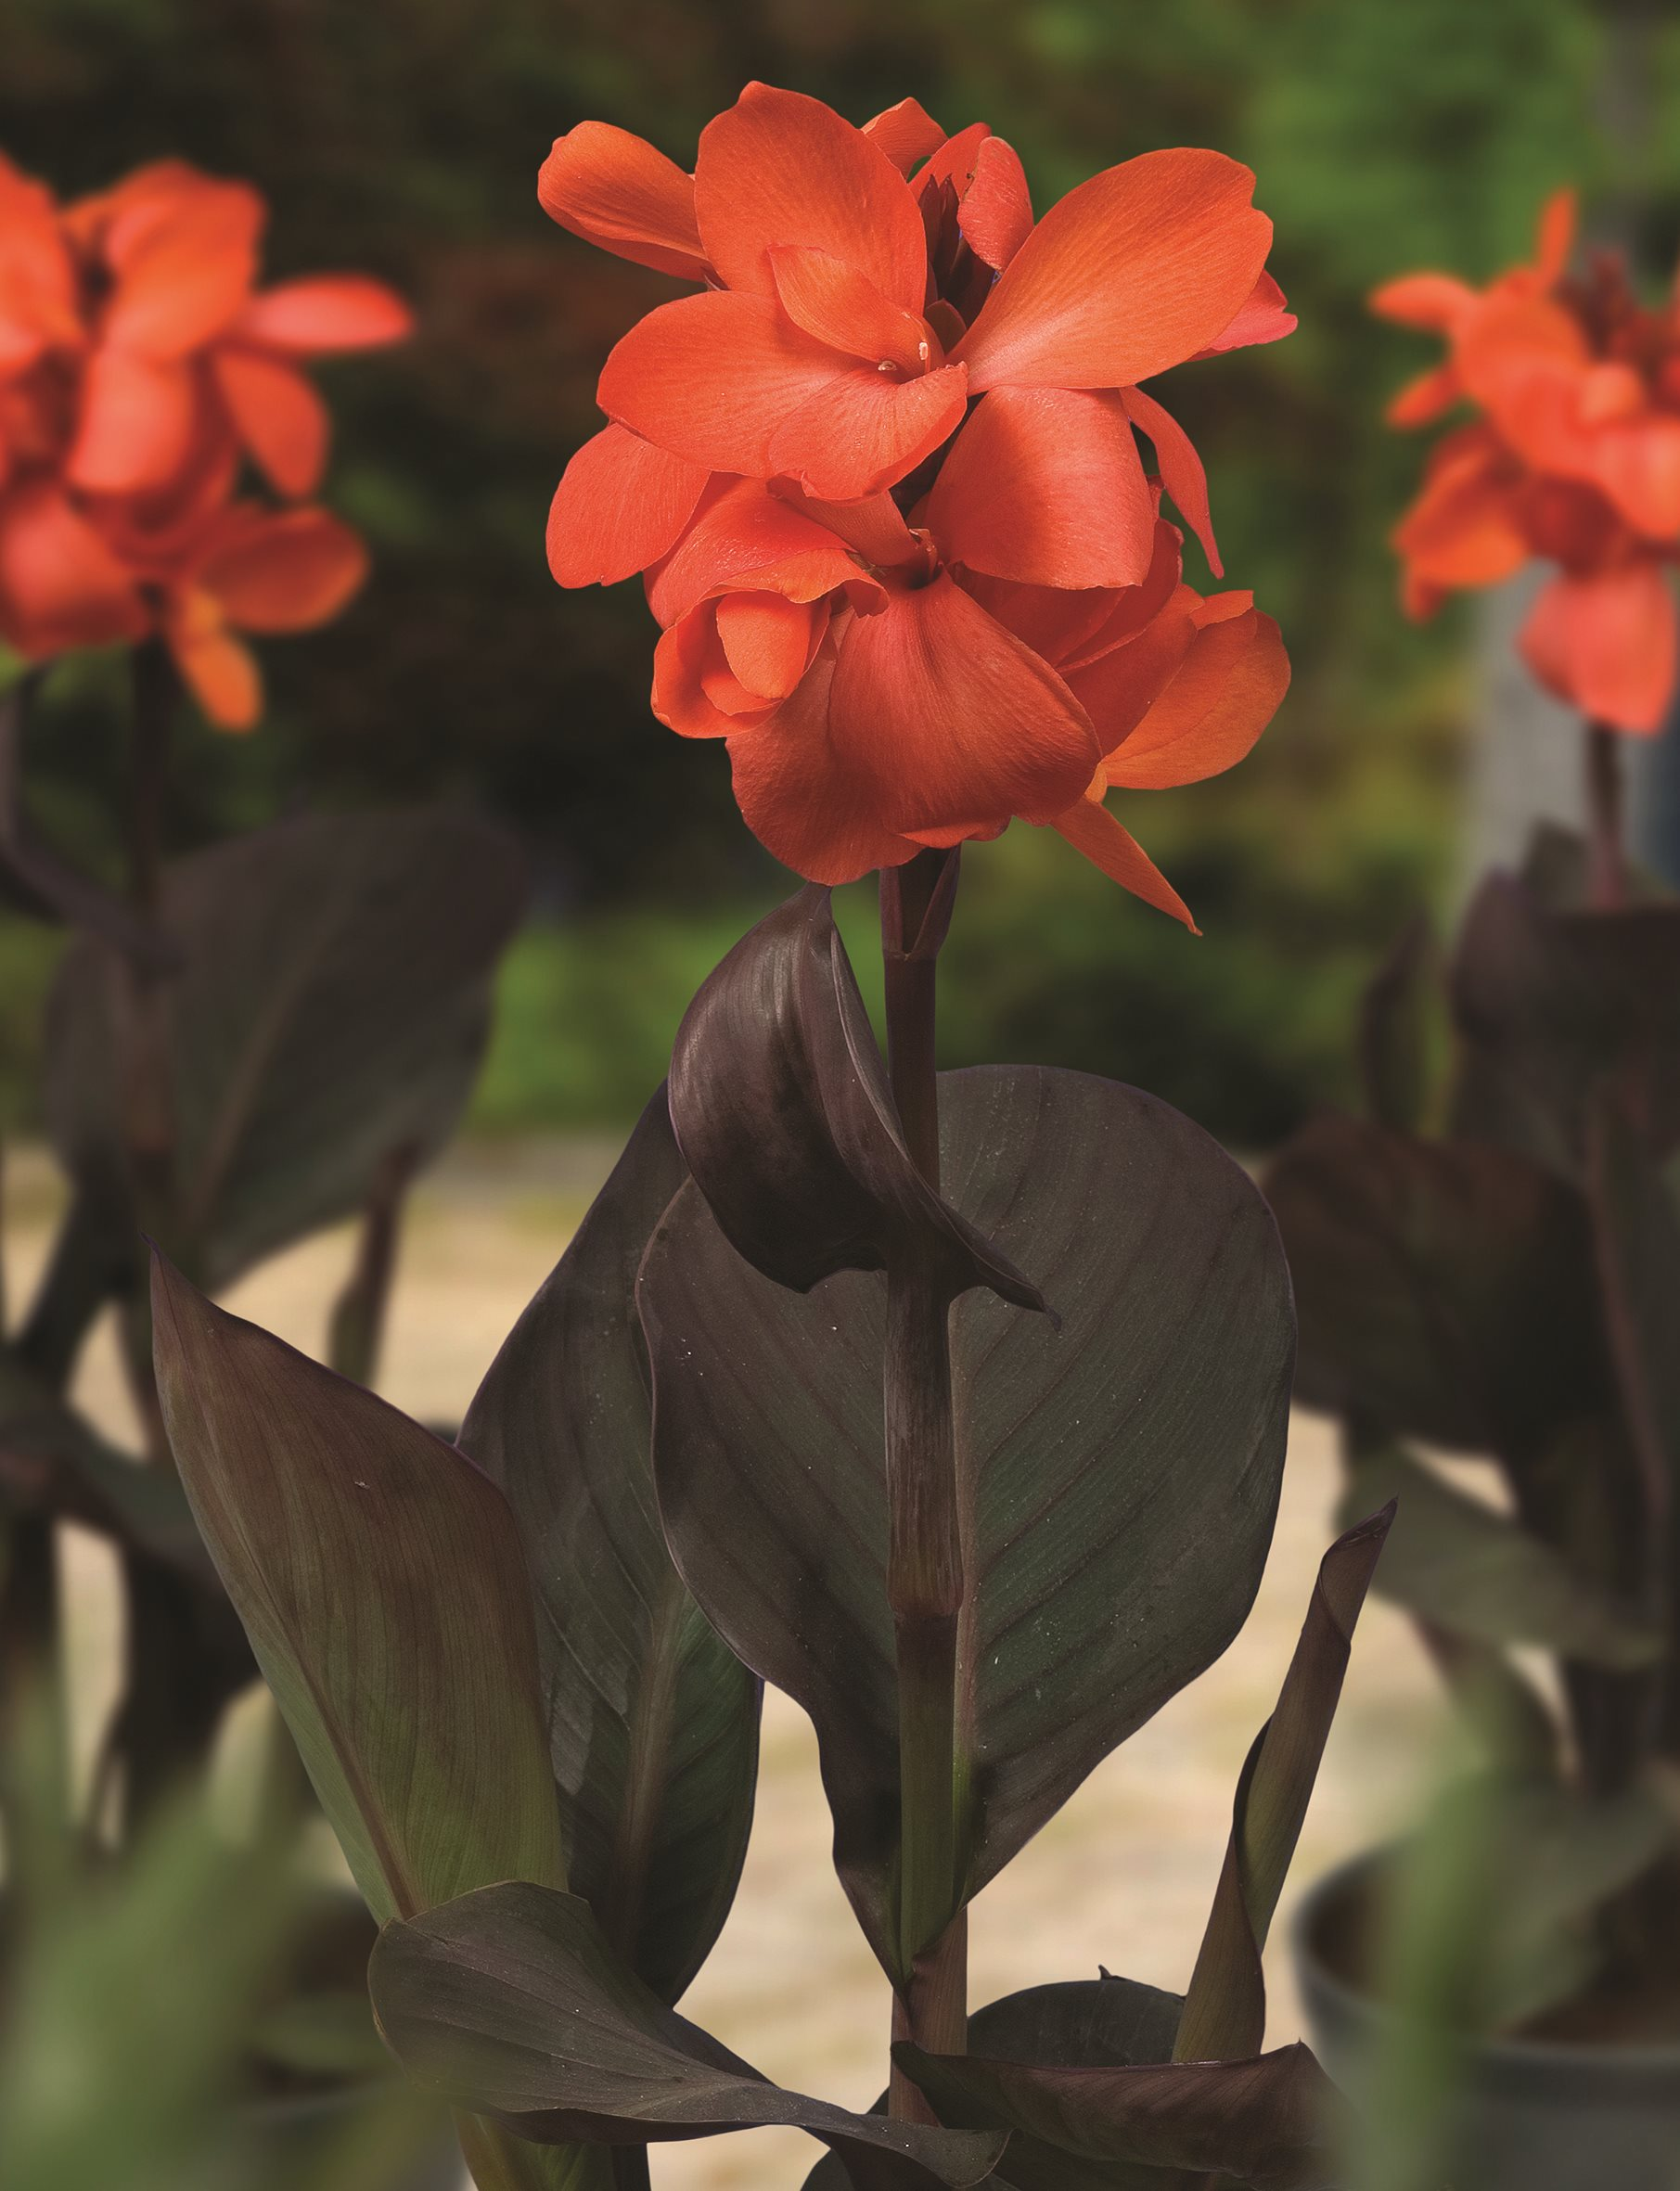 /Images/johnsonnursery/product-images/Canna Cannasol Happy Wilma bloom_pt263skms.jpg